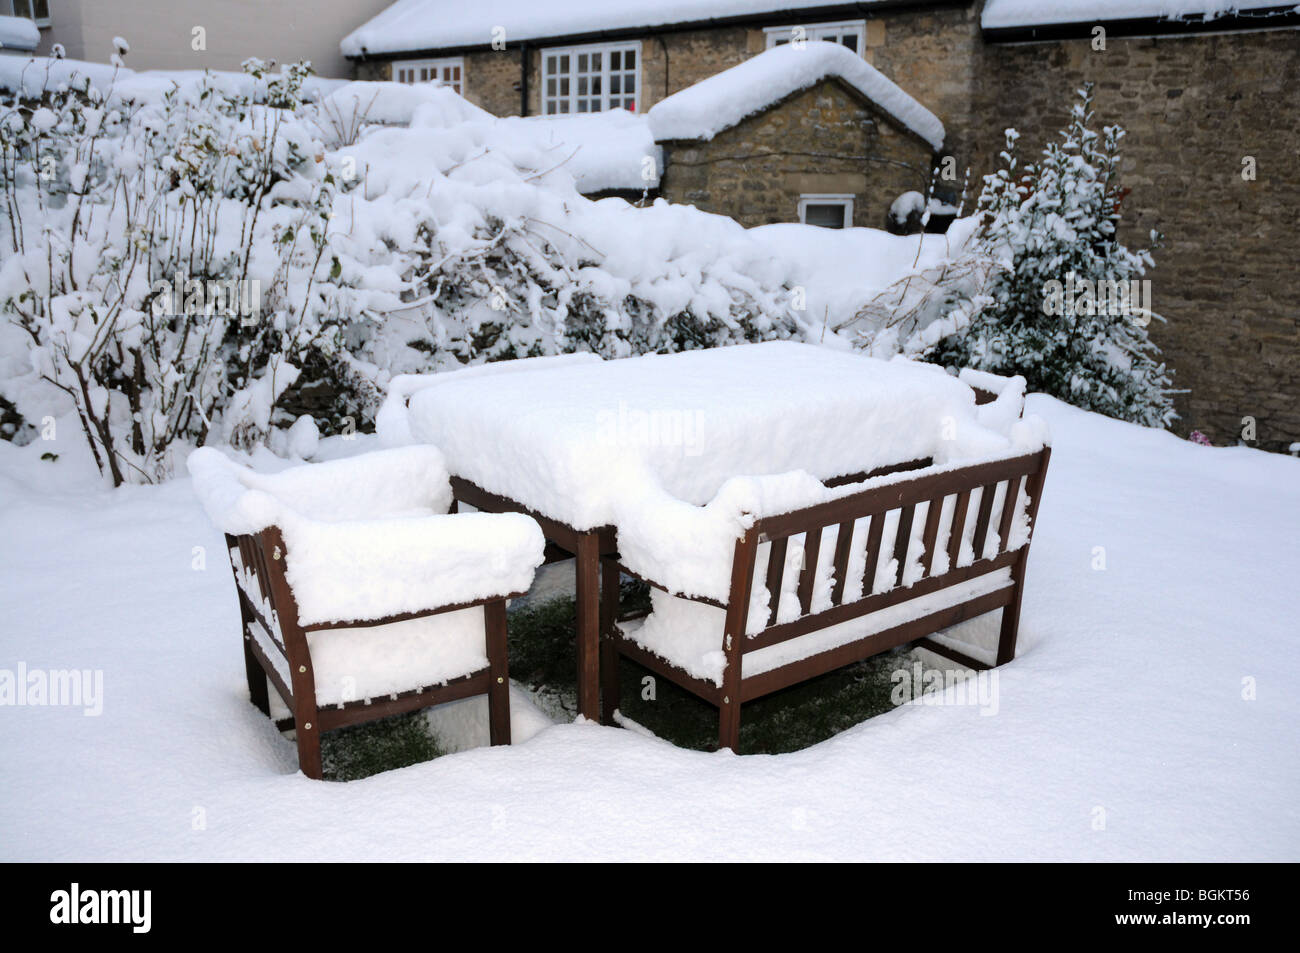 GArden furniture after a snowstorm in the cotswolds. GArden furniture after a snowstorm in the cotswolds Stock Photo